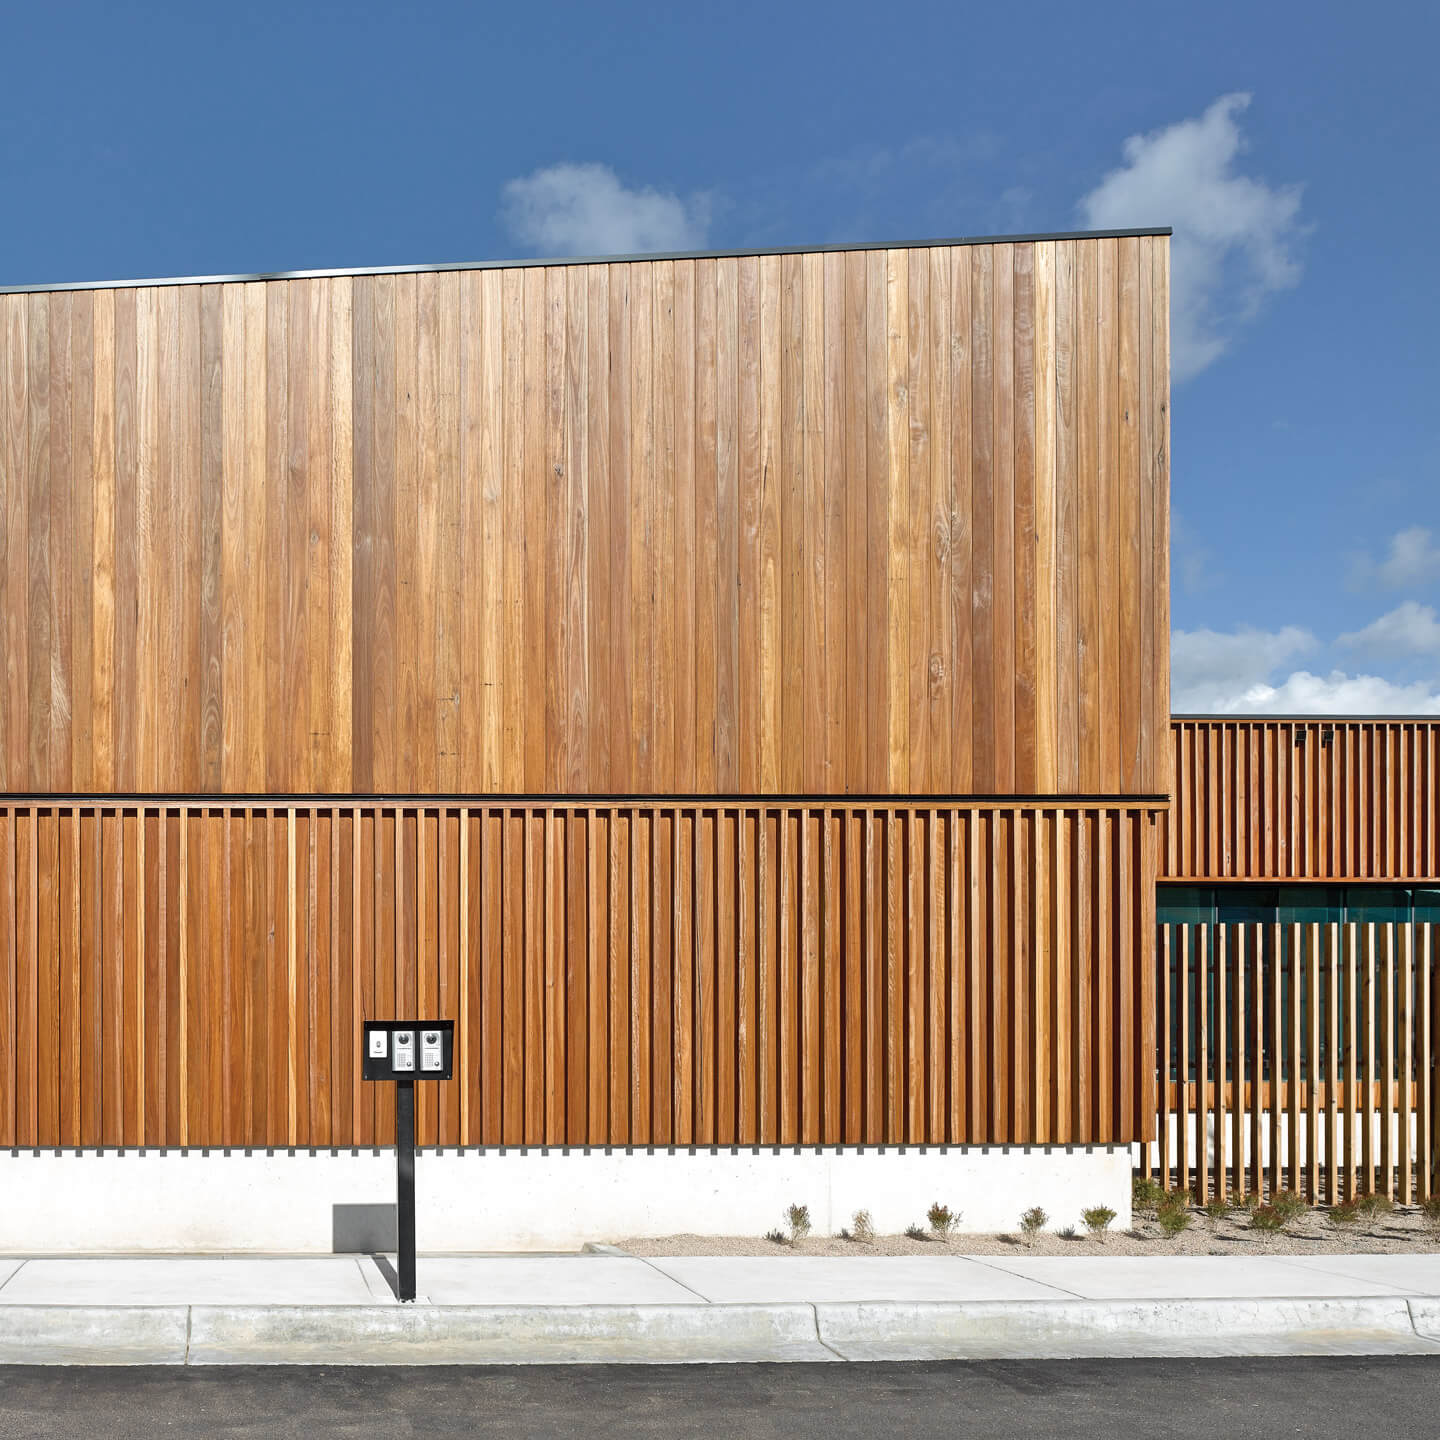 Sculptform - Tongue and Groove Cladding